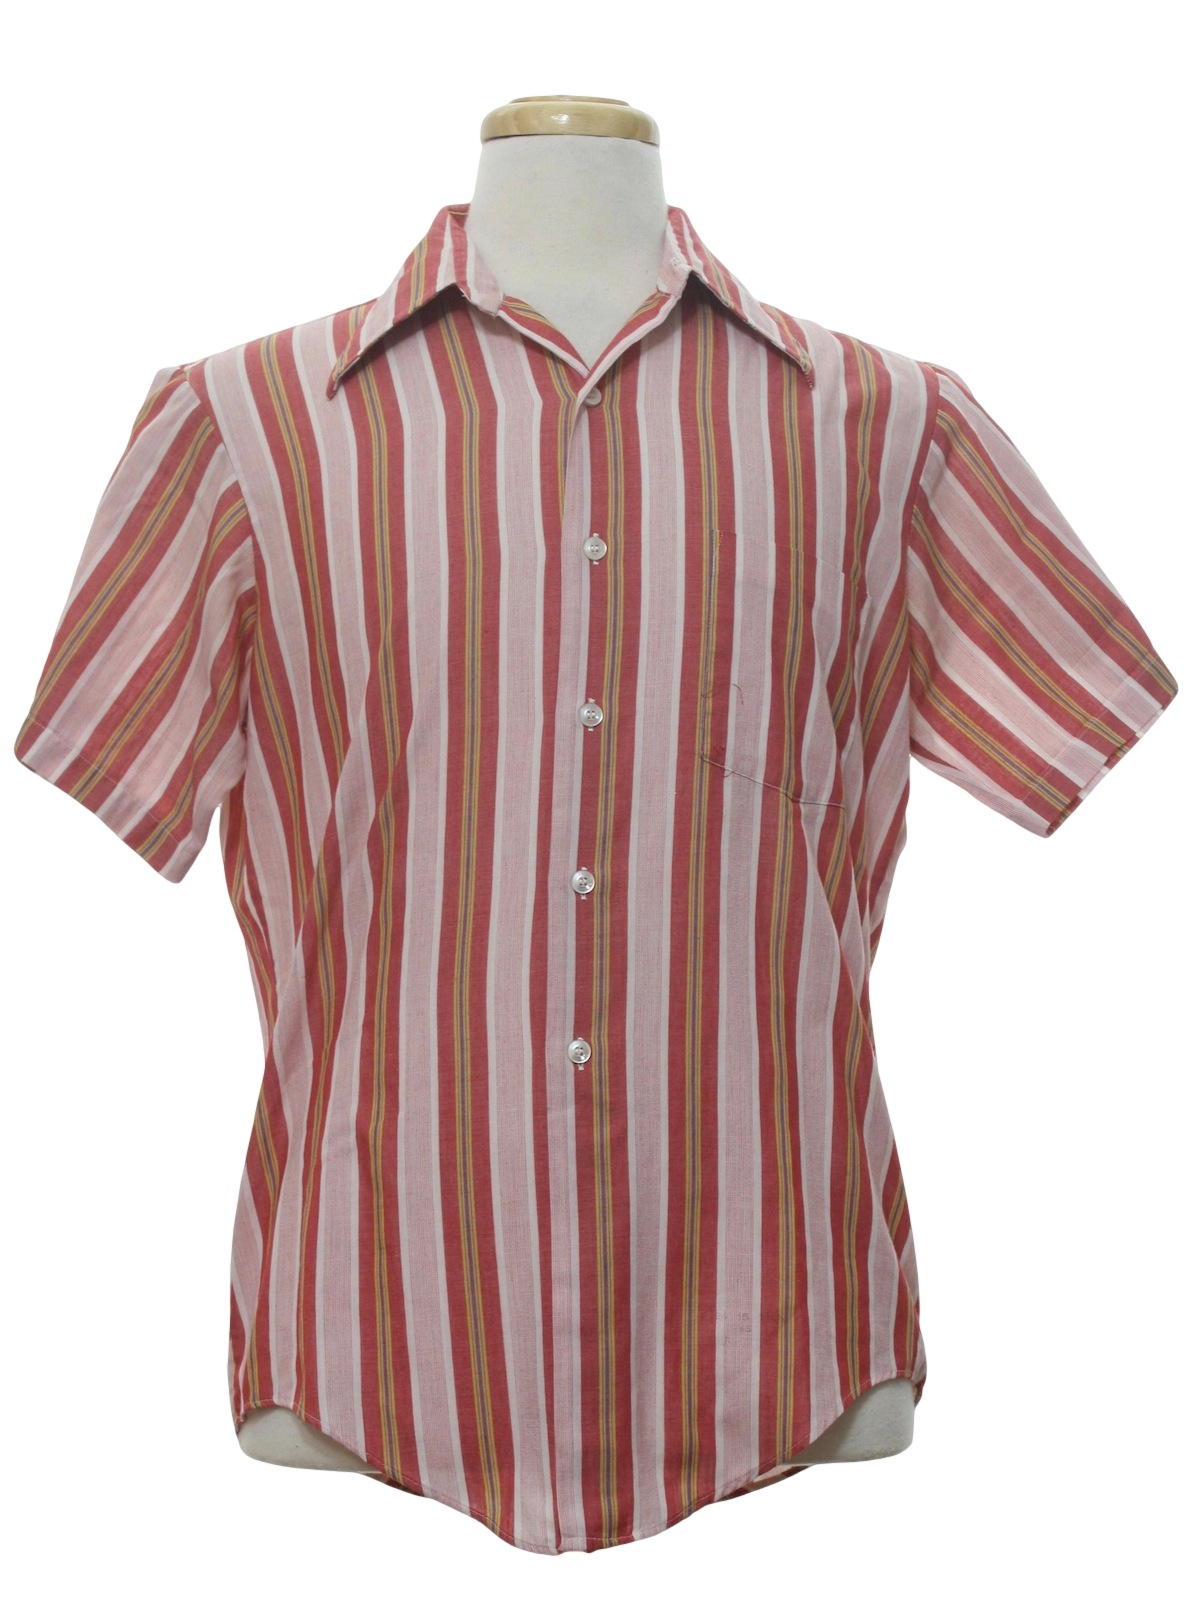 Seventies Kmart Shirt: 70s -Kmart- Mens pink background with off ...